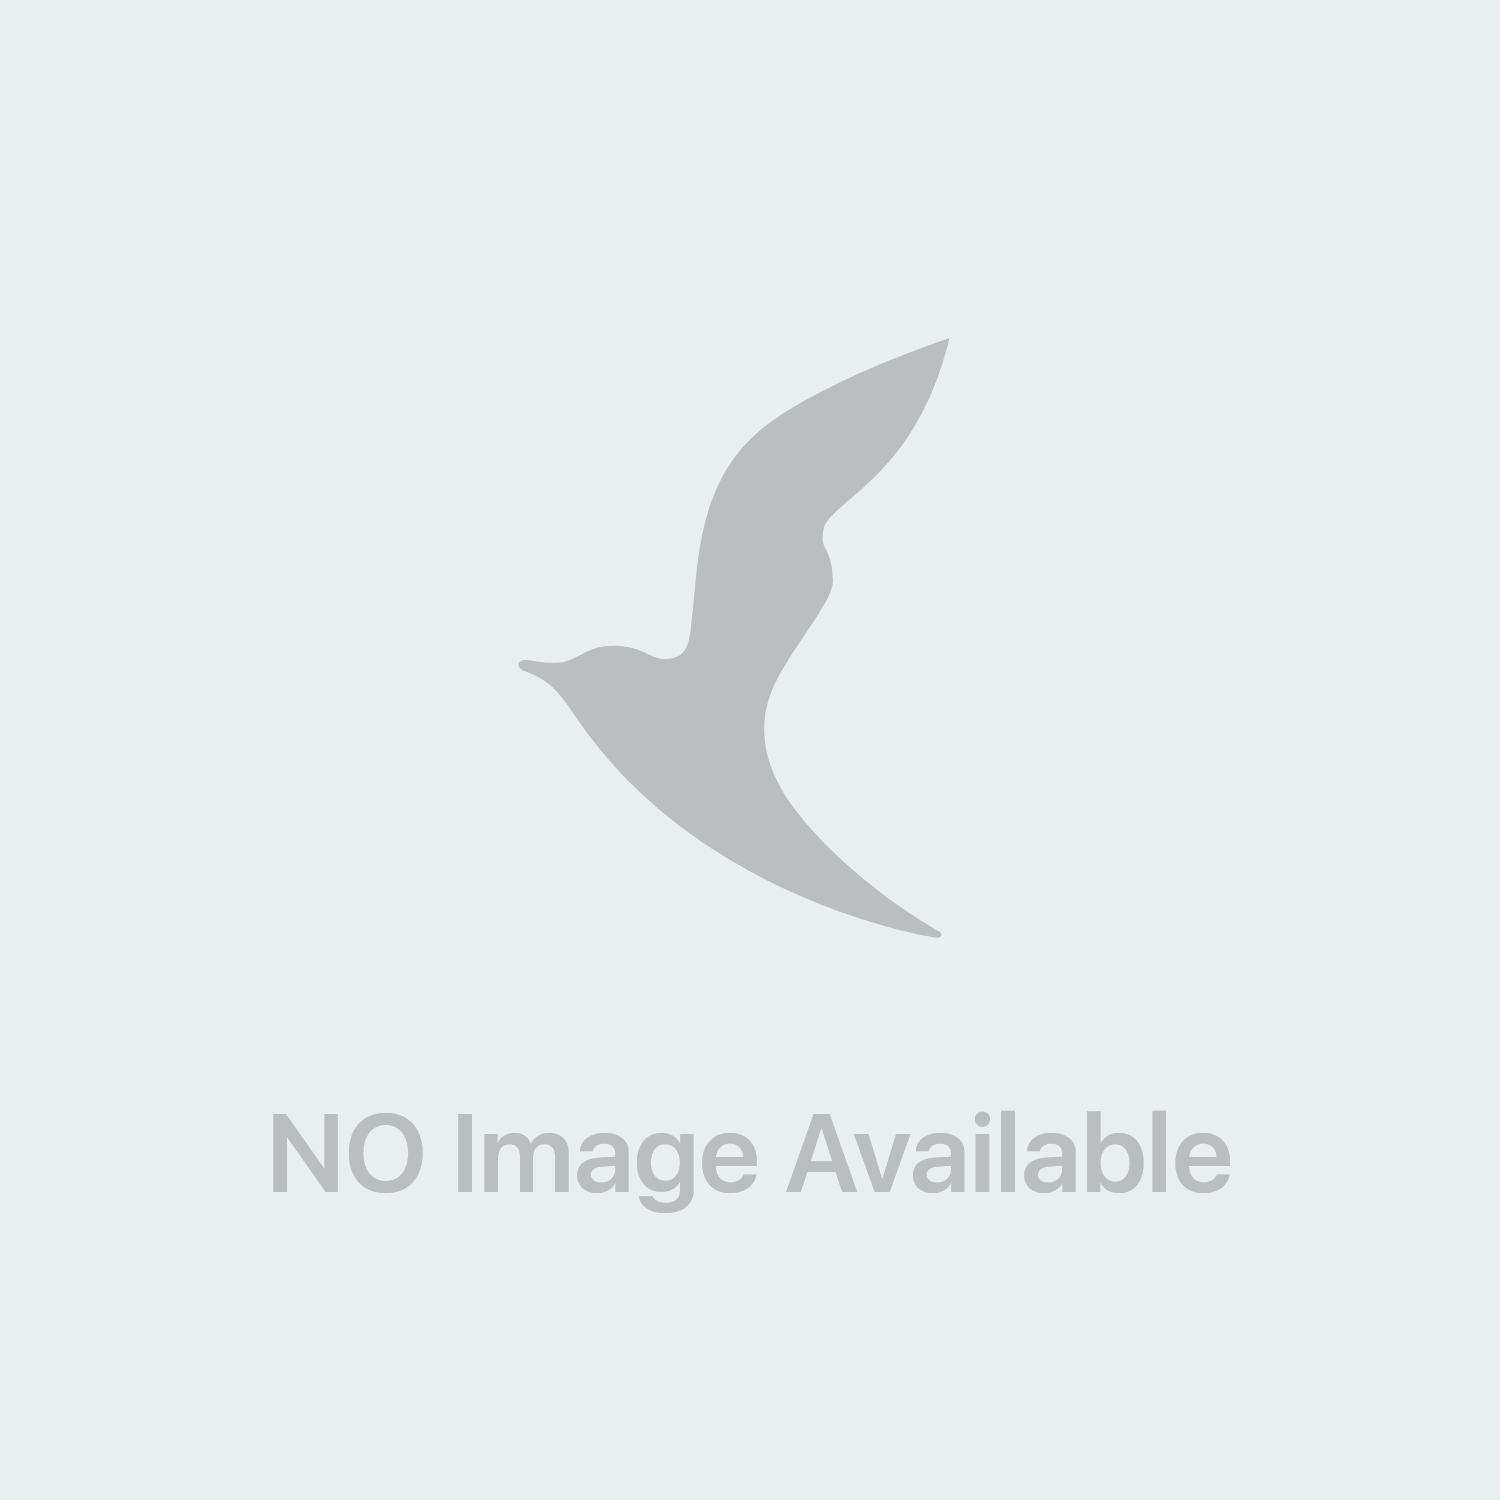 Slais Pi Guard Spot-On Repellente Cani e Gatti 5 Fiale Da 2ml